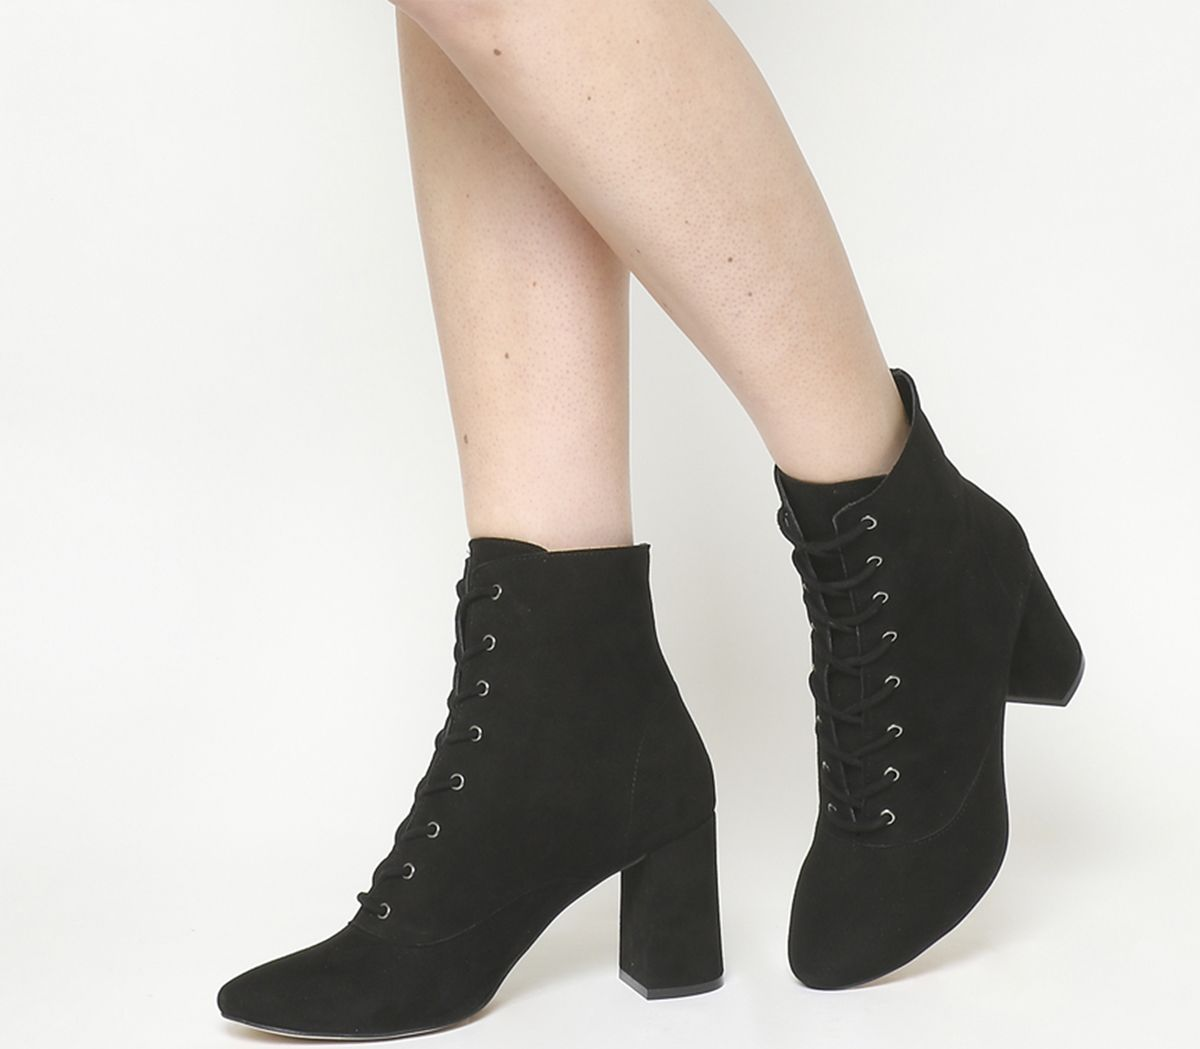 51431b017a Office Aroma Lace Up Block Heels Black Suede - Ankle Boots